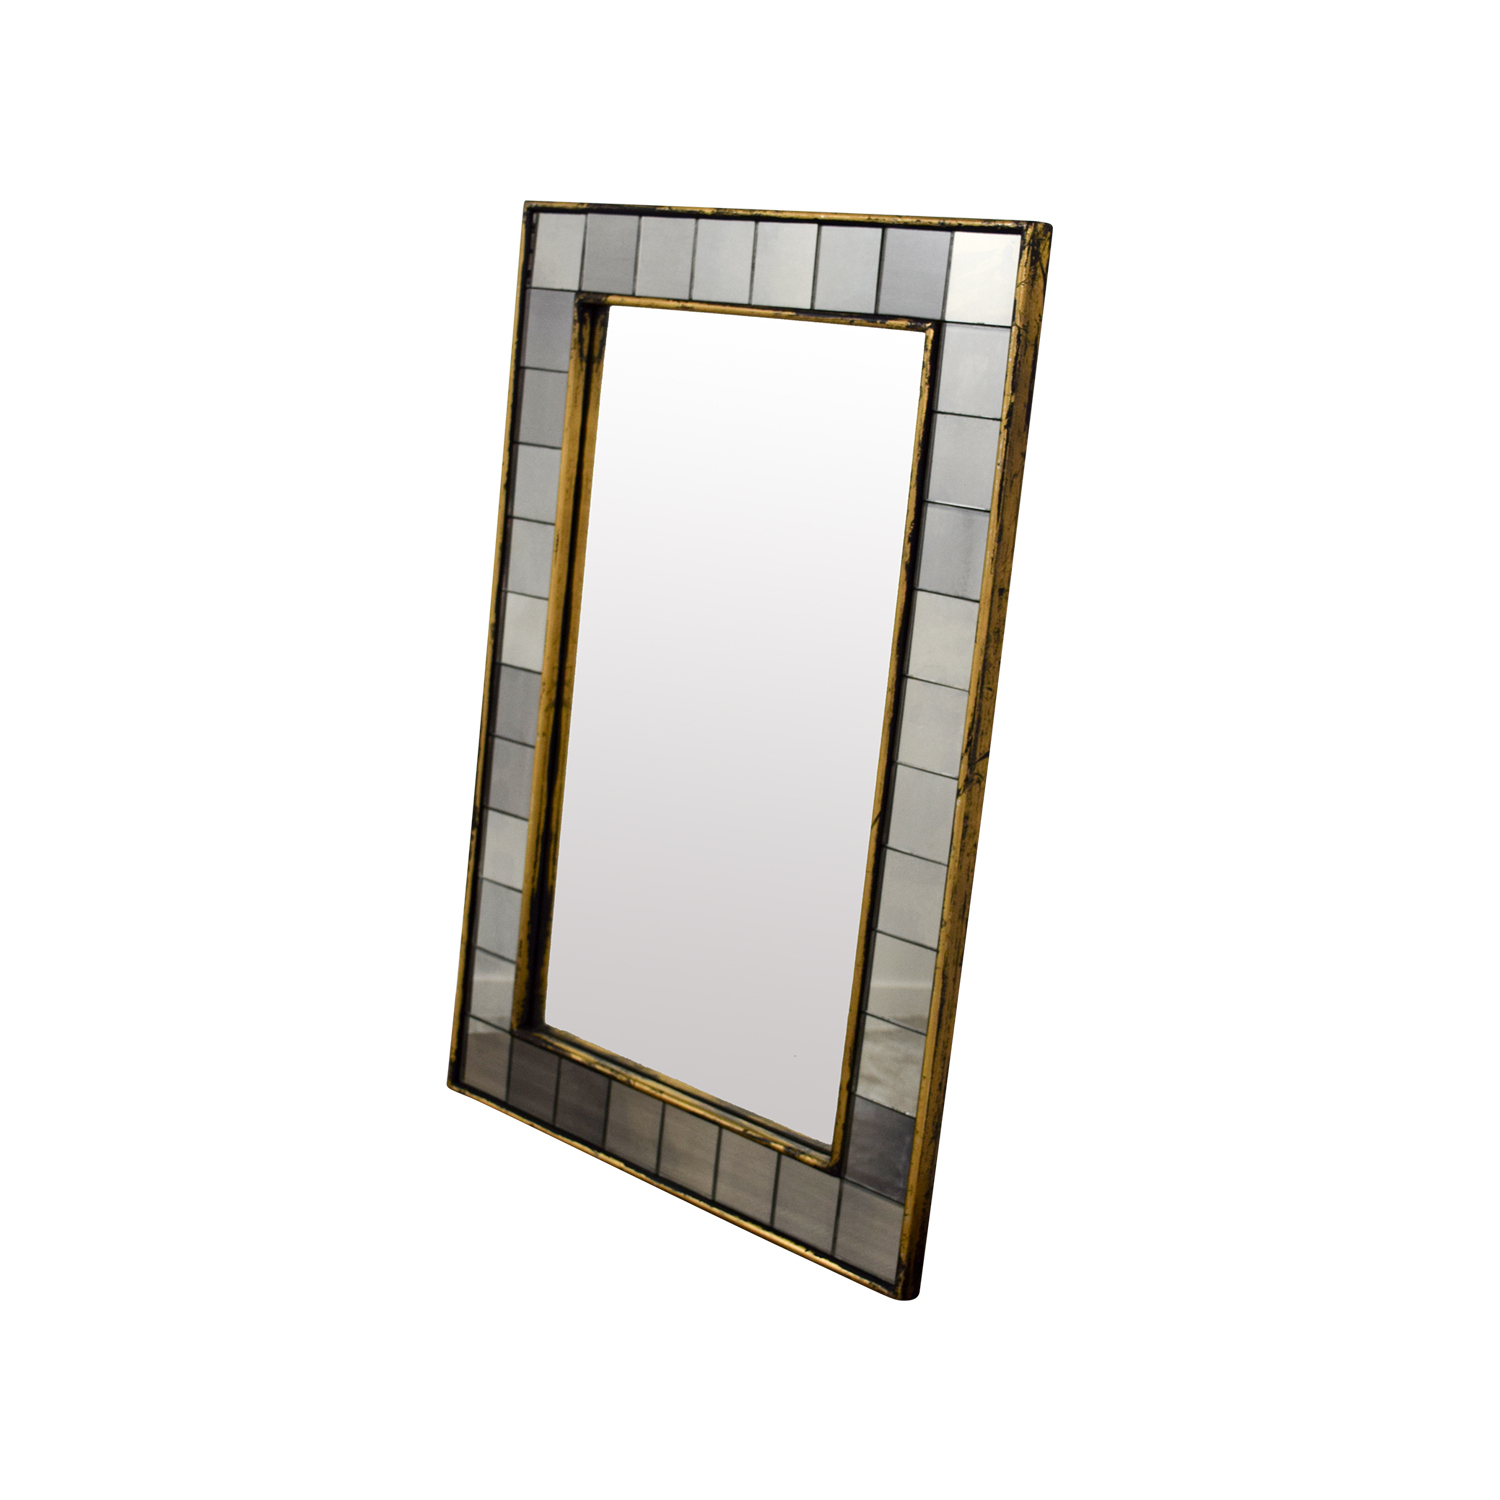 [%73% Off – West Elm West Elm Antique Tiled Wall Mirror / Decor Intended For Famous West Elm Wall Mirrors|west Elm Wall Mirrors Inside Famous 73% Off – West Elm West Elm Antique Tiled Wall Mirror / Decor|well Known West Elm Wall Mirrors Pertaining To 73% Off – West Elm West Elm Antique Tiled Wall Mirror / Decor|fashionable 73% Off – West Elm West Elm Antique Tiled Wall Mirror / Decor Pertaining To West Elm Wall Mirrors%] (View 10 of 20)